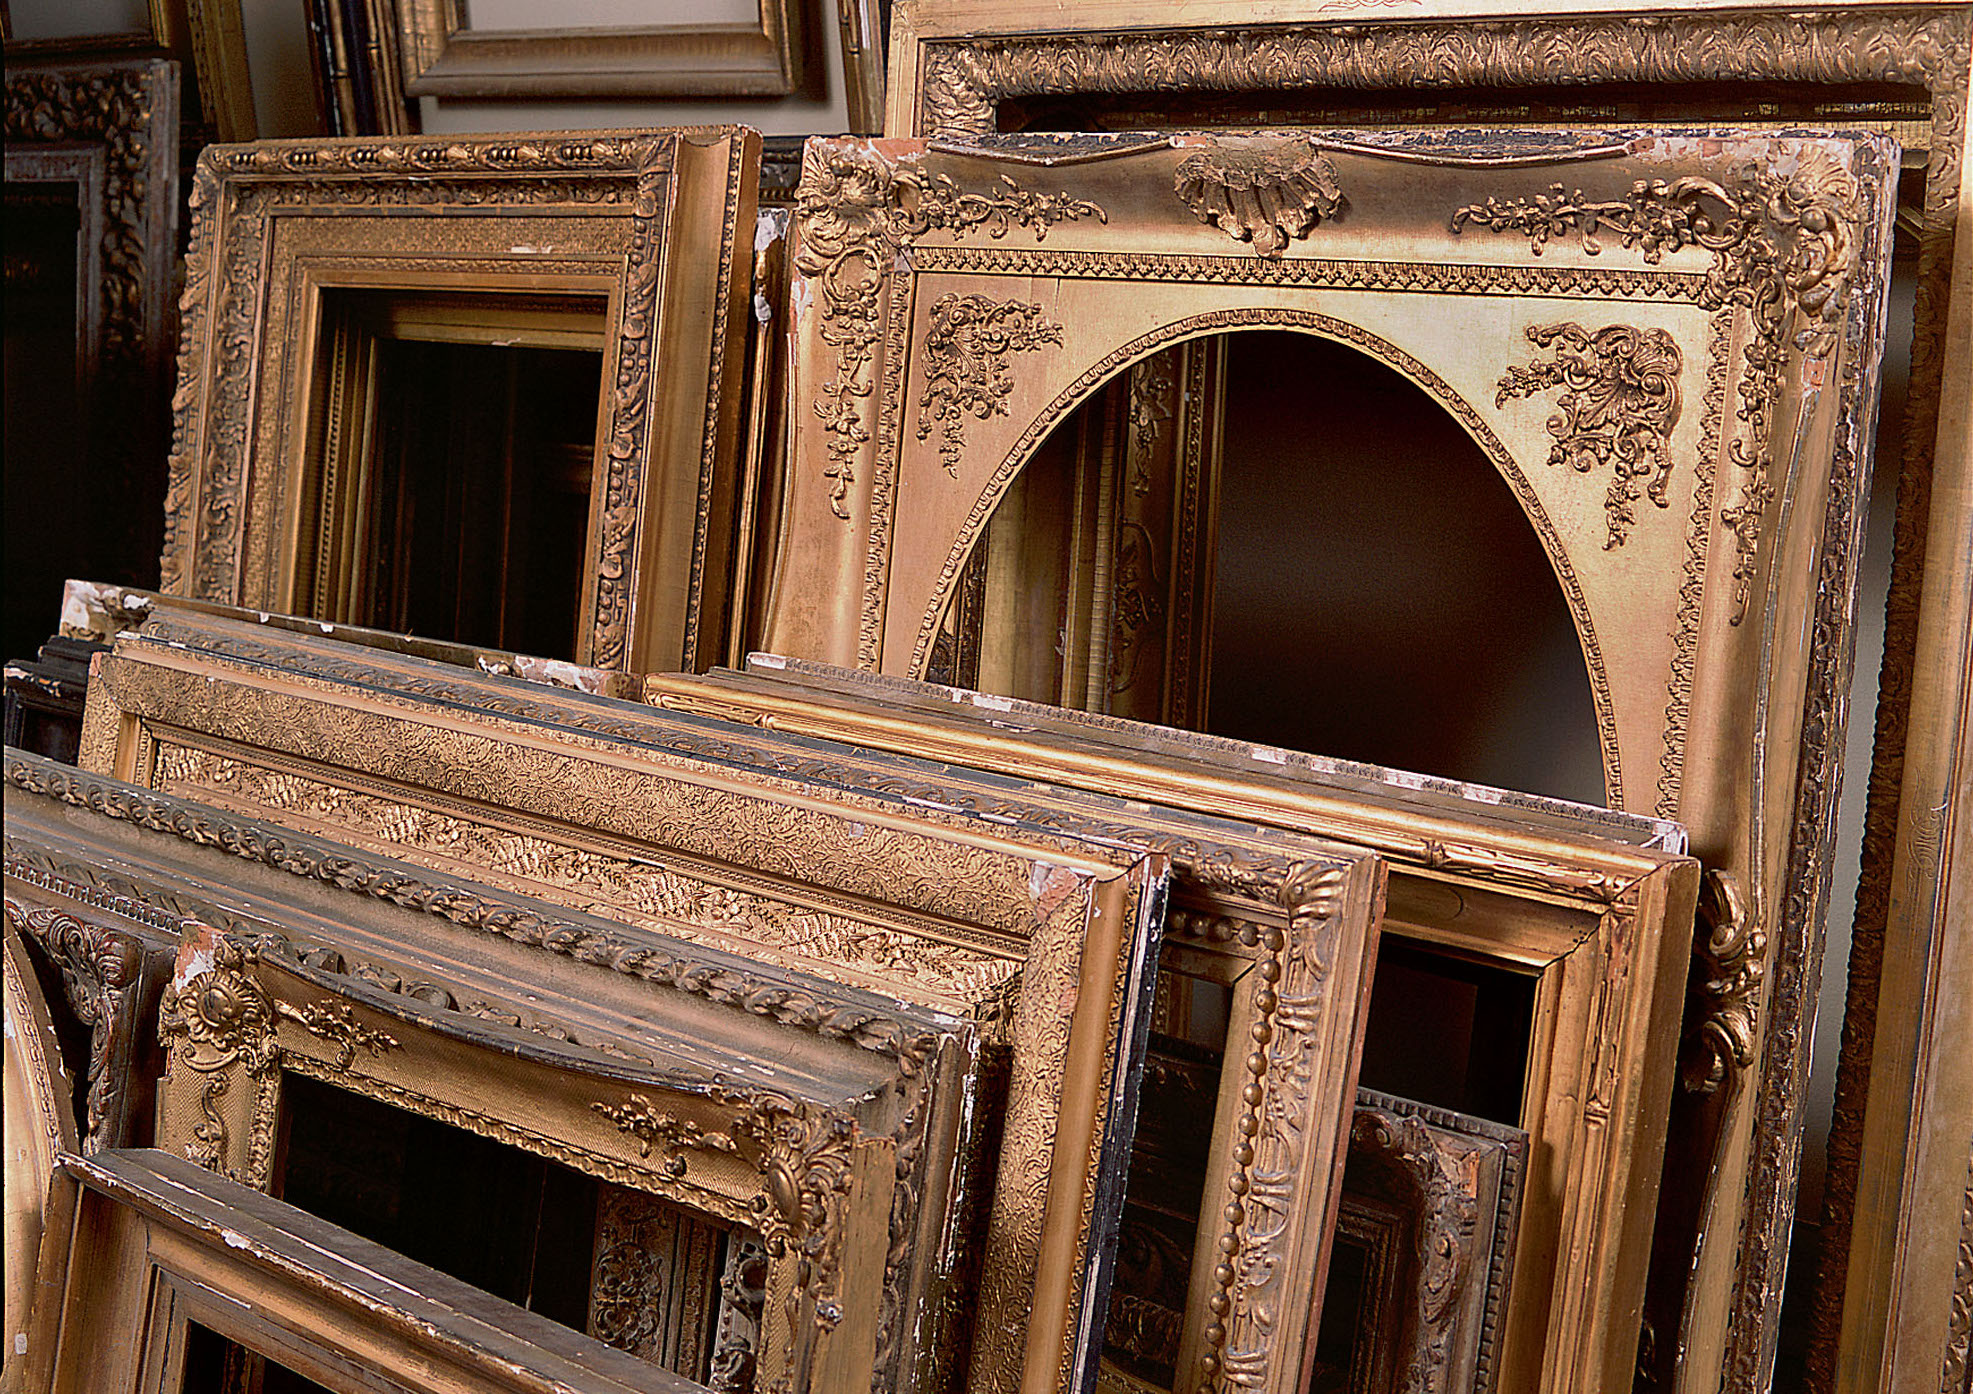 Well crafted  and nicely aged, many antique frames are themselves works of art.